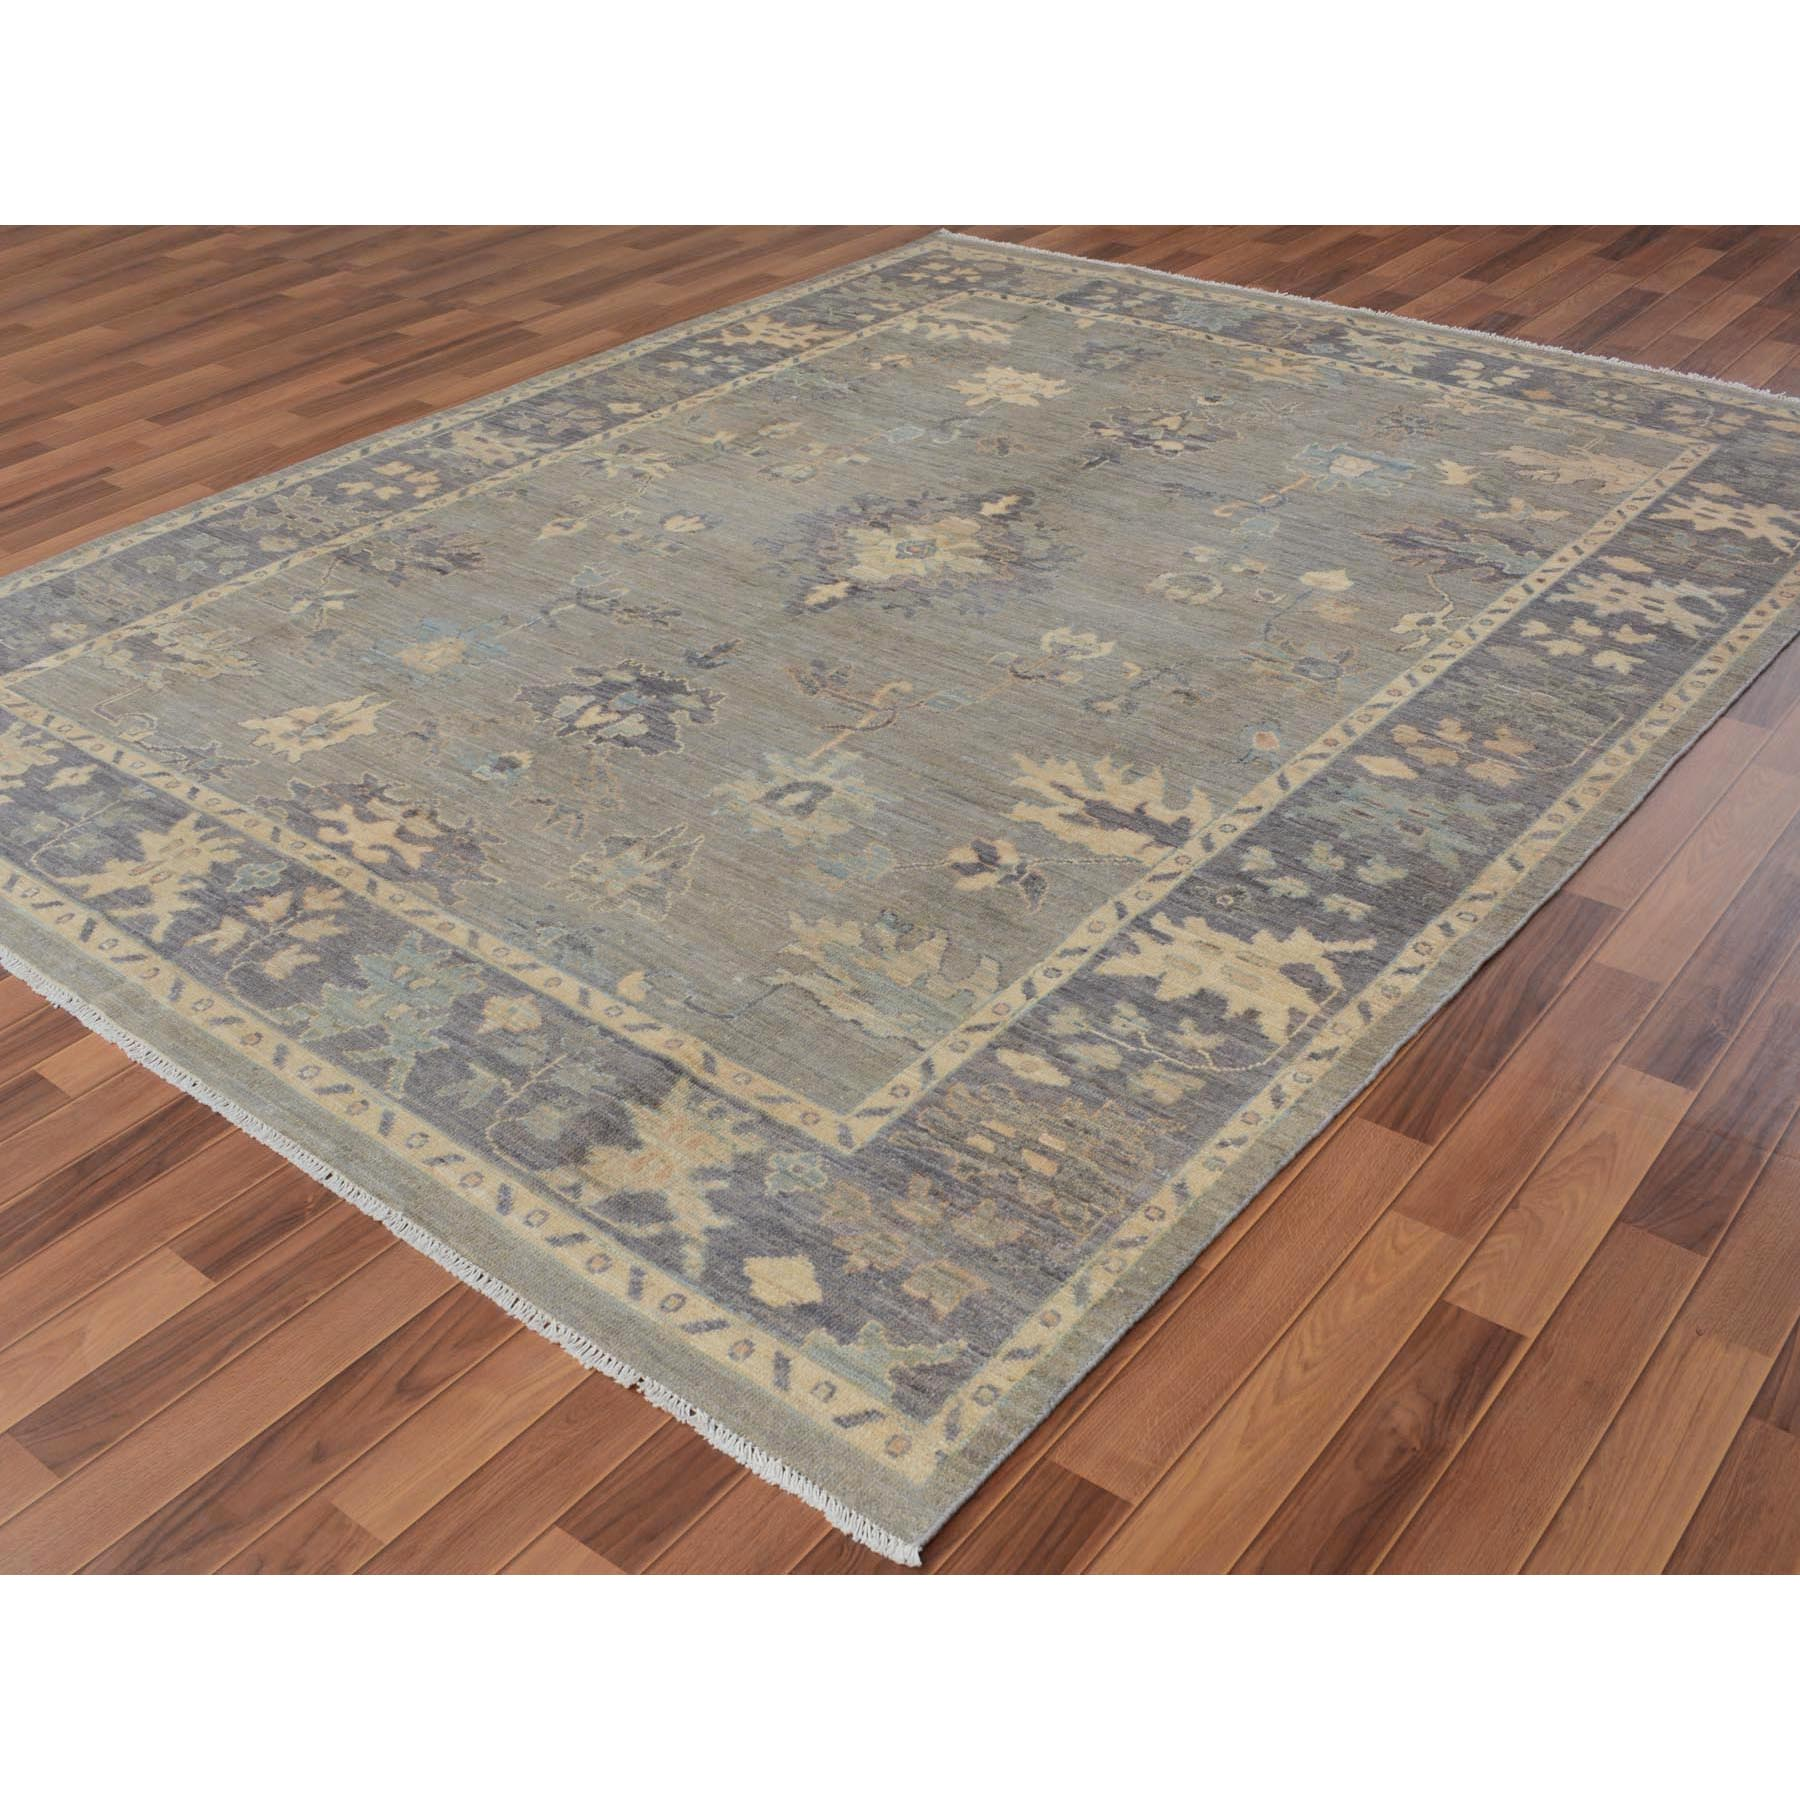 "8'2""x10'4"" Gray Angora Oushak With Soft Velvety Wool Hand Woven Oriental Rug"